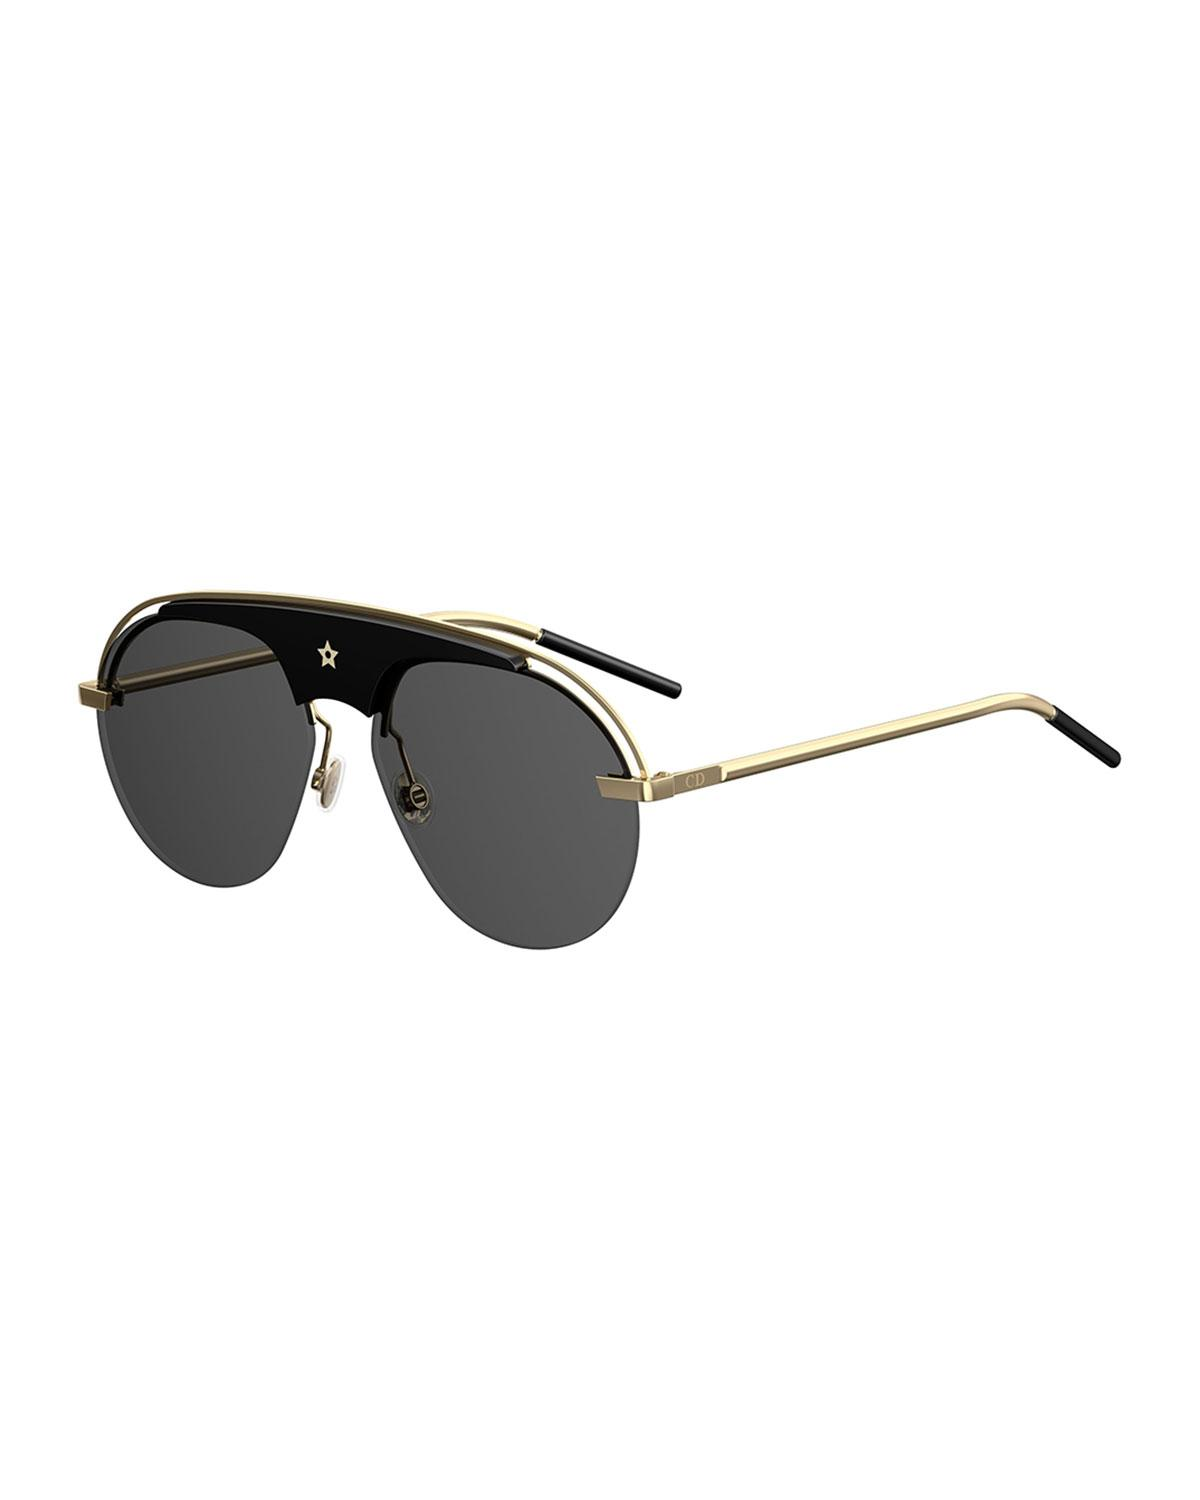 86d88e2bc308 Lyst - Dior Dio(r)evolution Aviator Sunglasses in Black - Save 52%